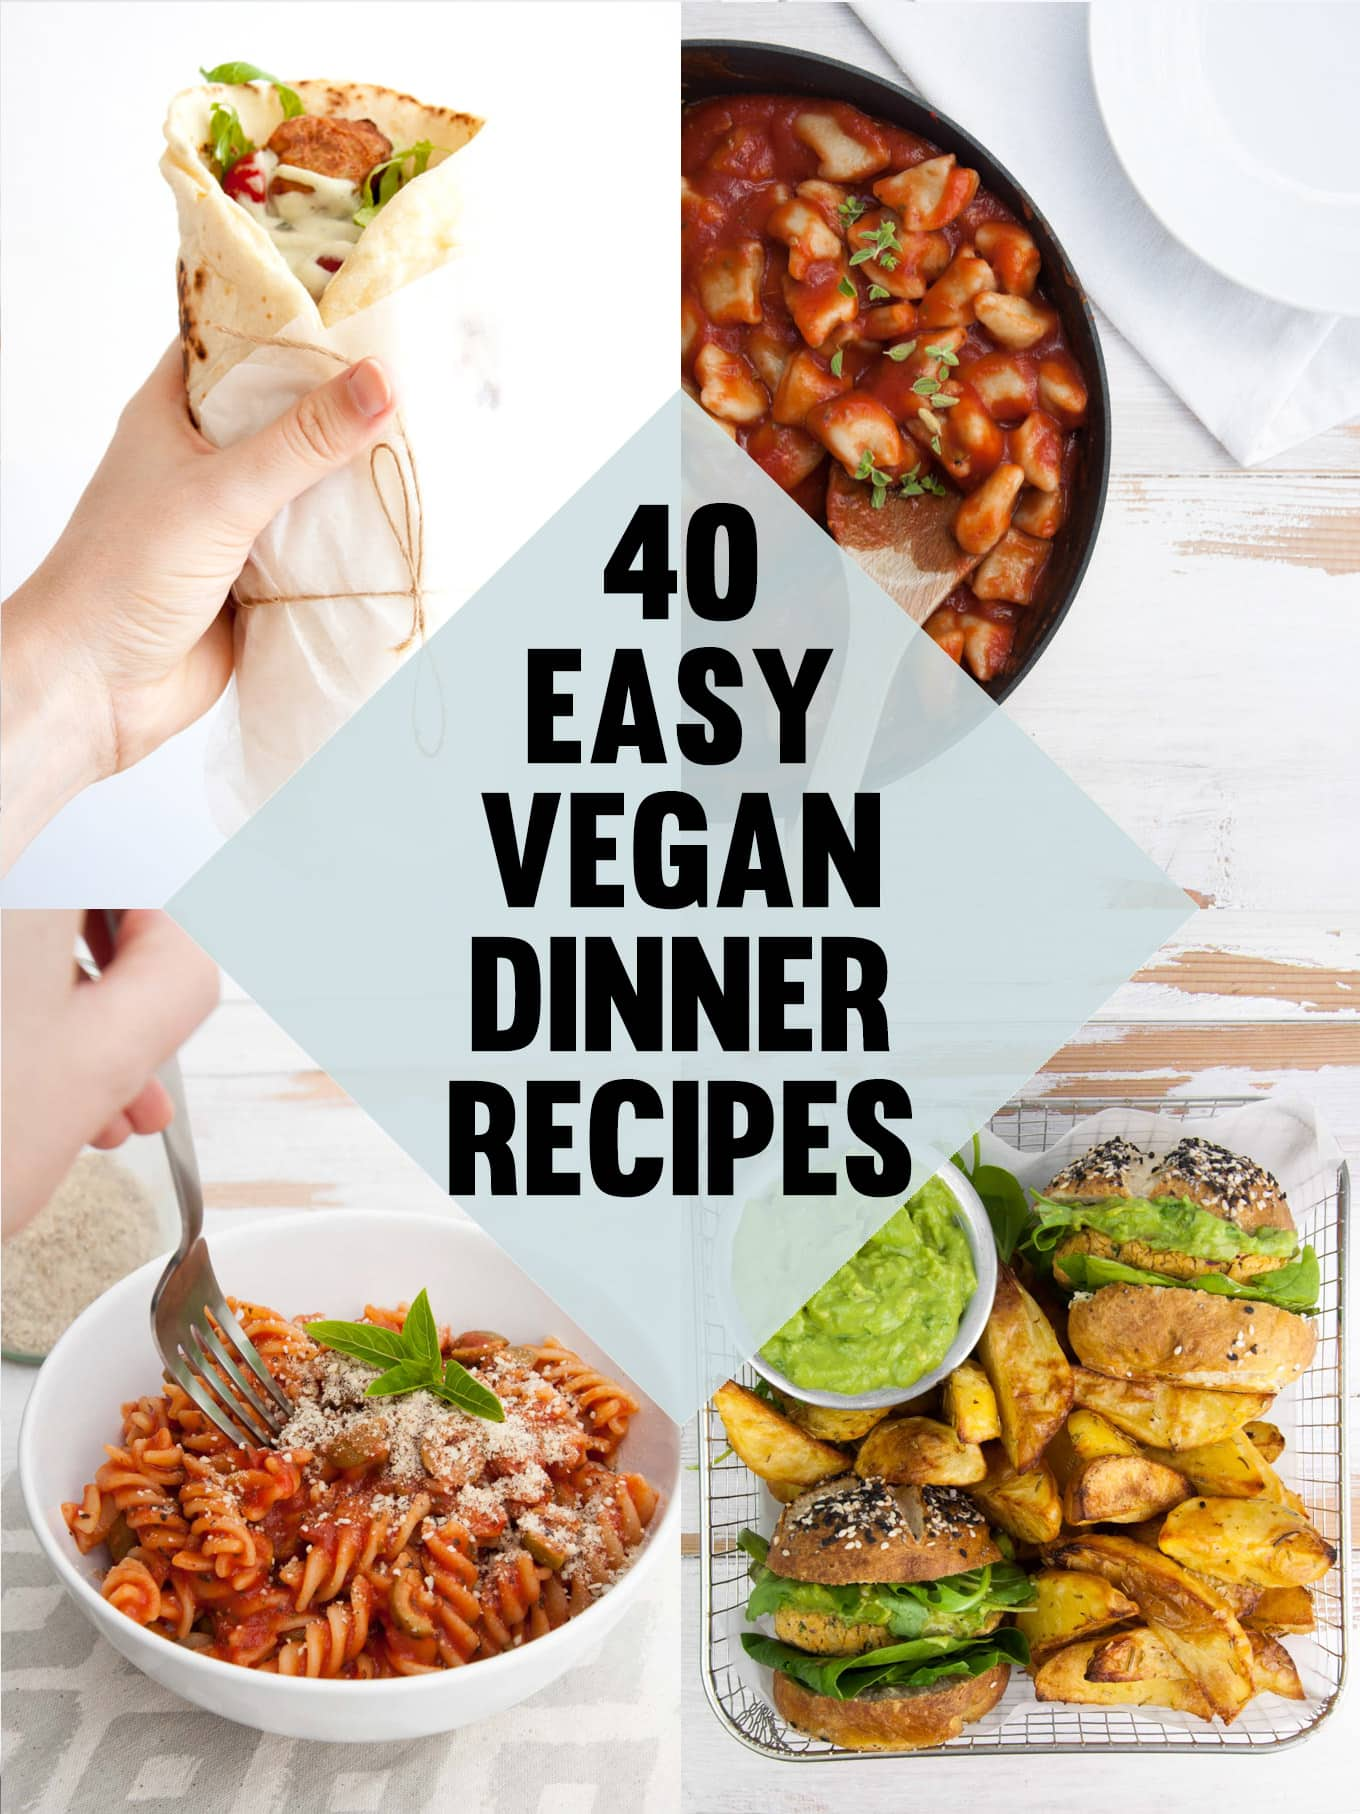 40 Easy Vegan Dinner Recipes